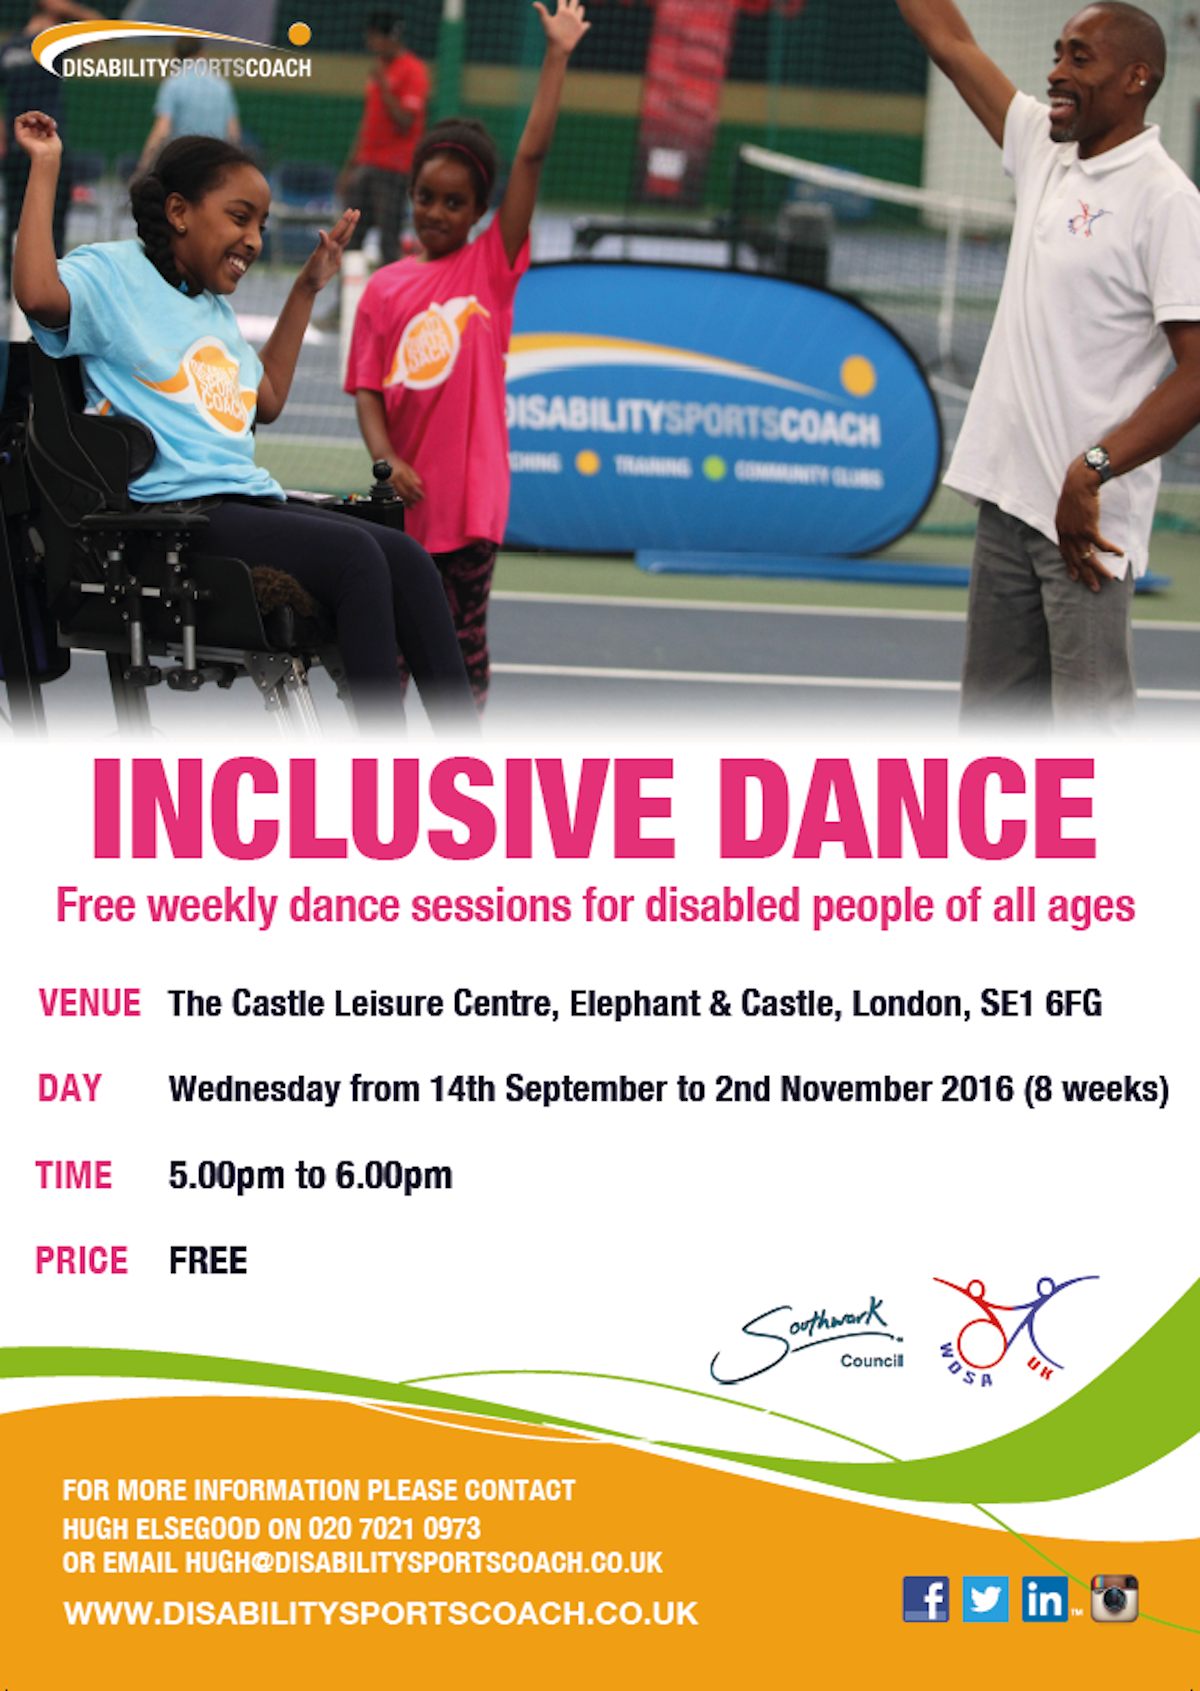 Disability Sports Coach Inclusive Dance at The Castle Leisure Centre